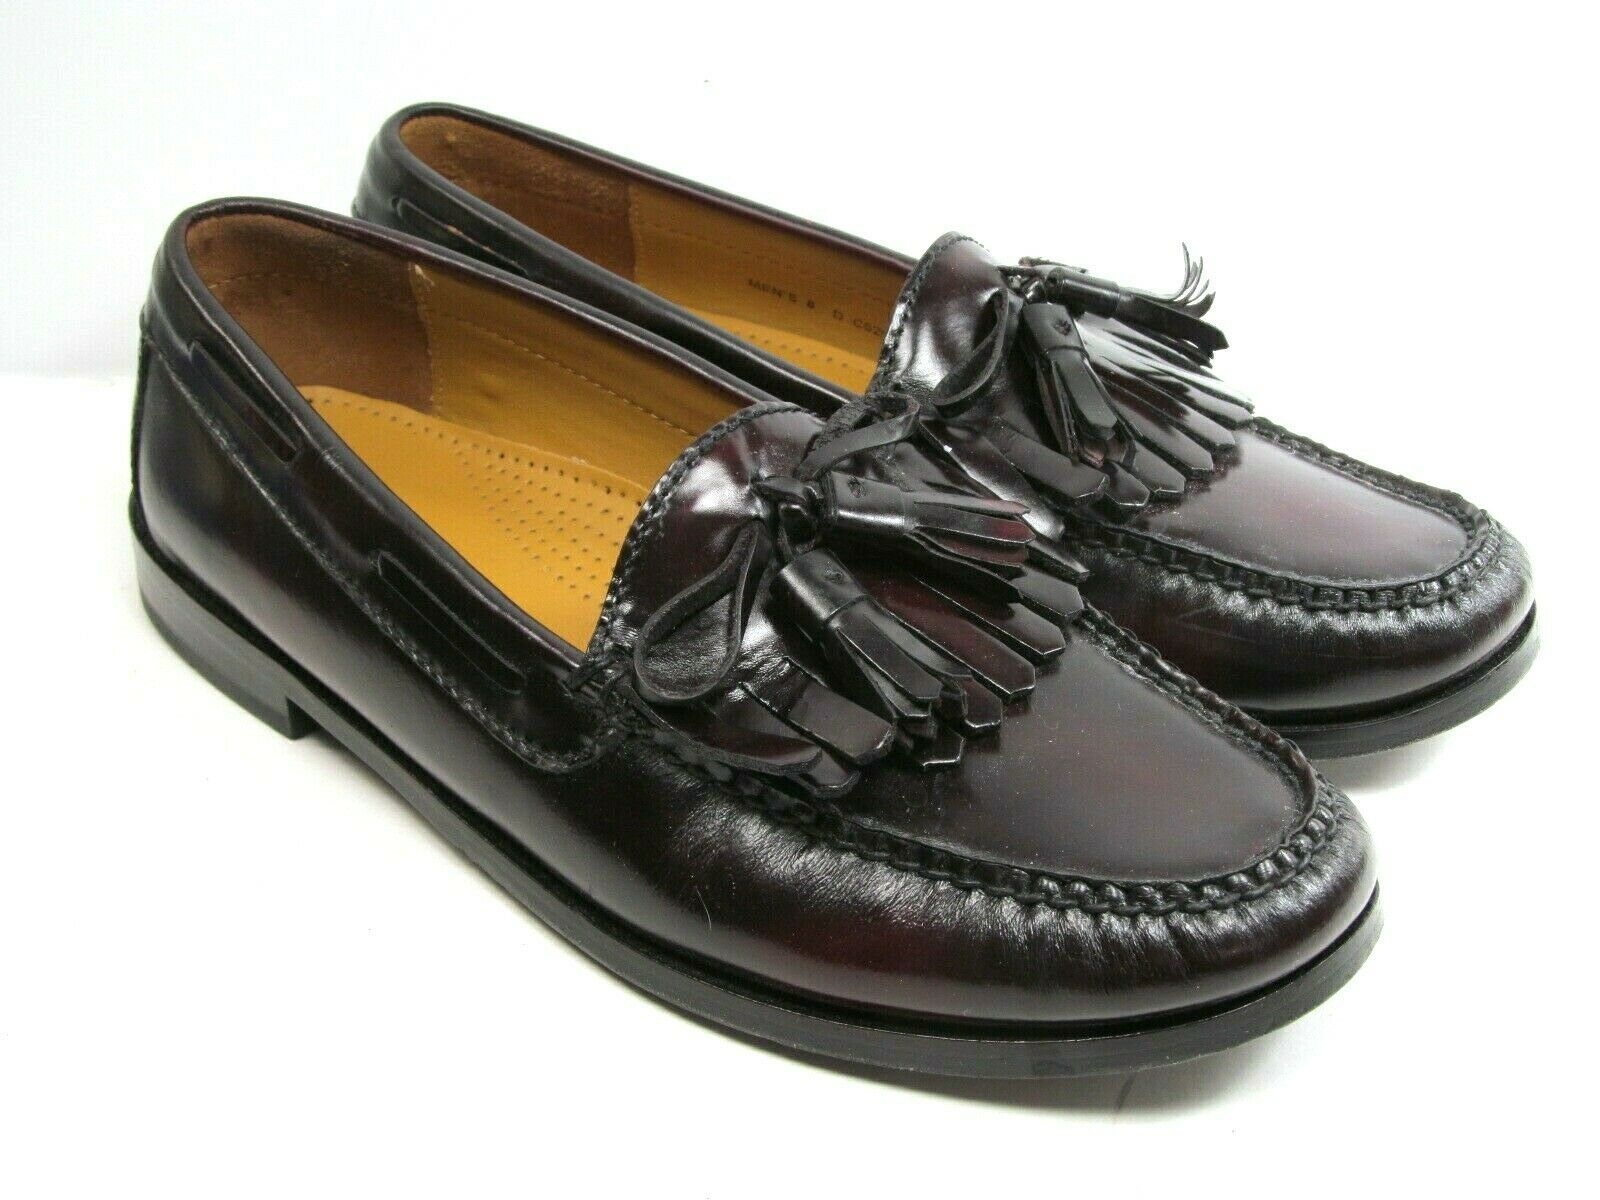 Primary image for Cole Haan Tassle Bow Mens Loafers Size 8 D EUC Burgundy/Black